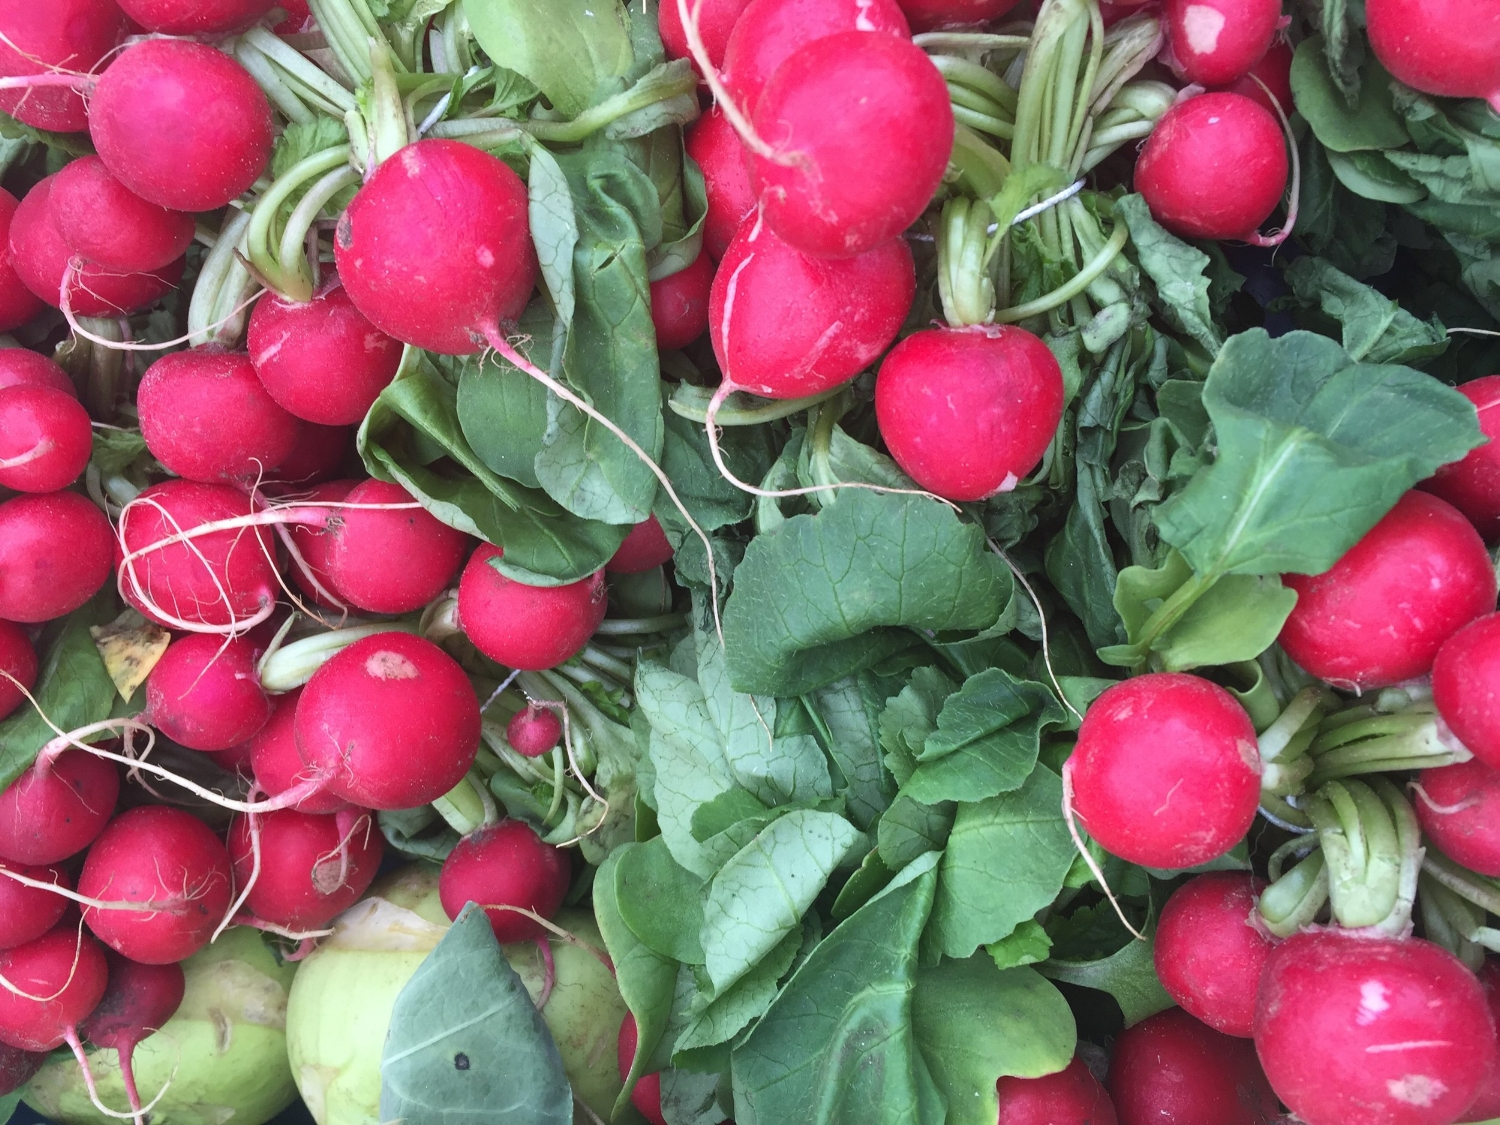 Radishes at the Albert Cuyp open air market in Amsterdam